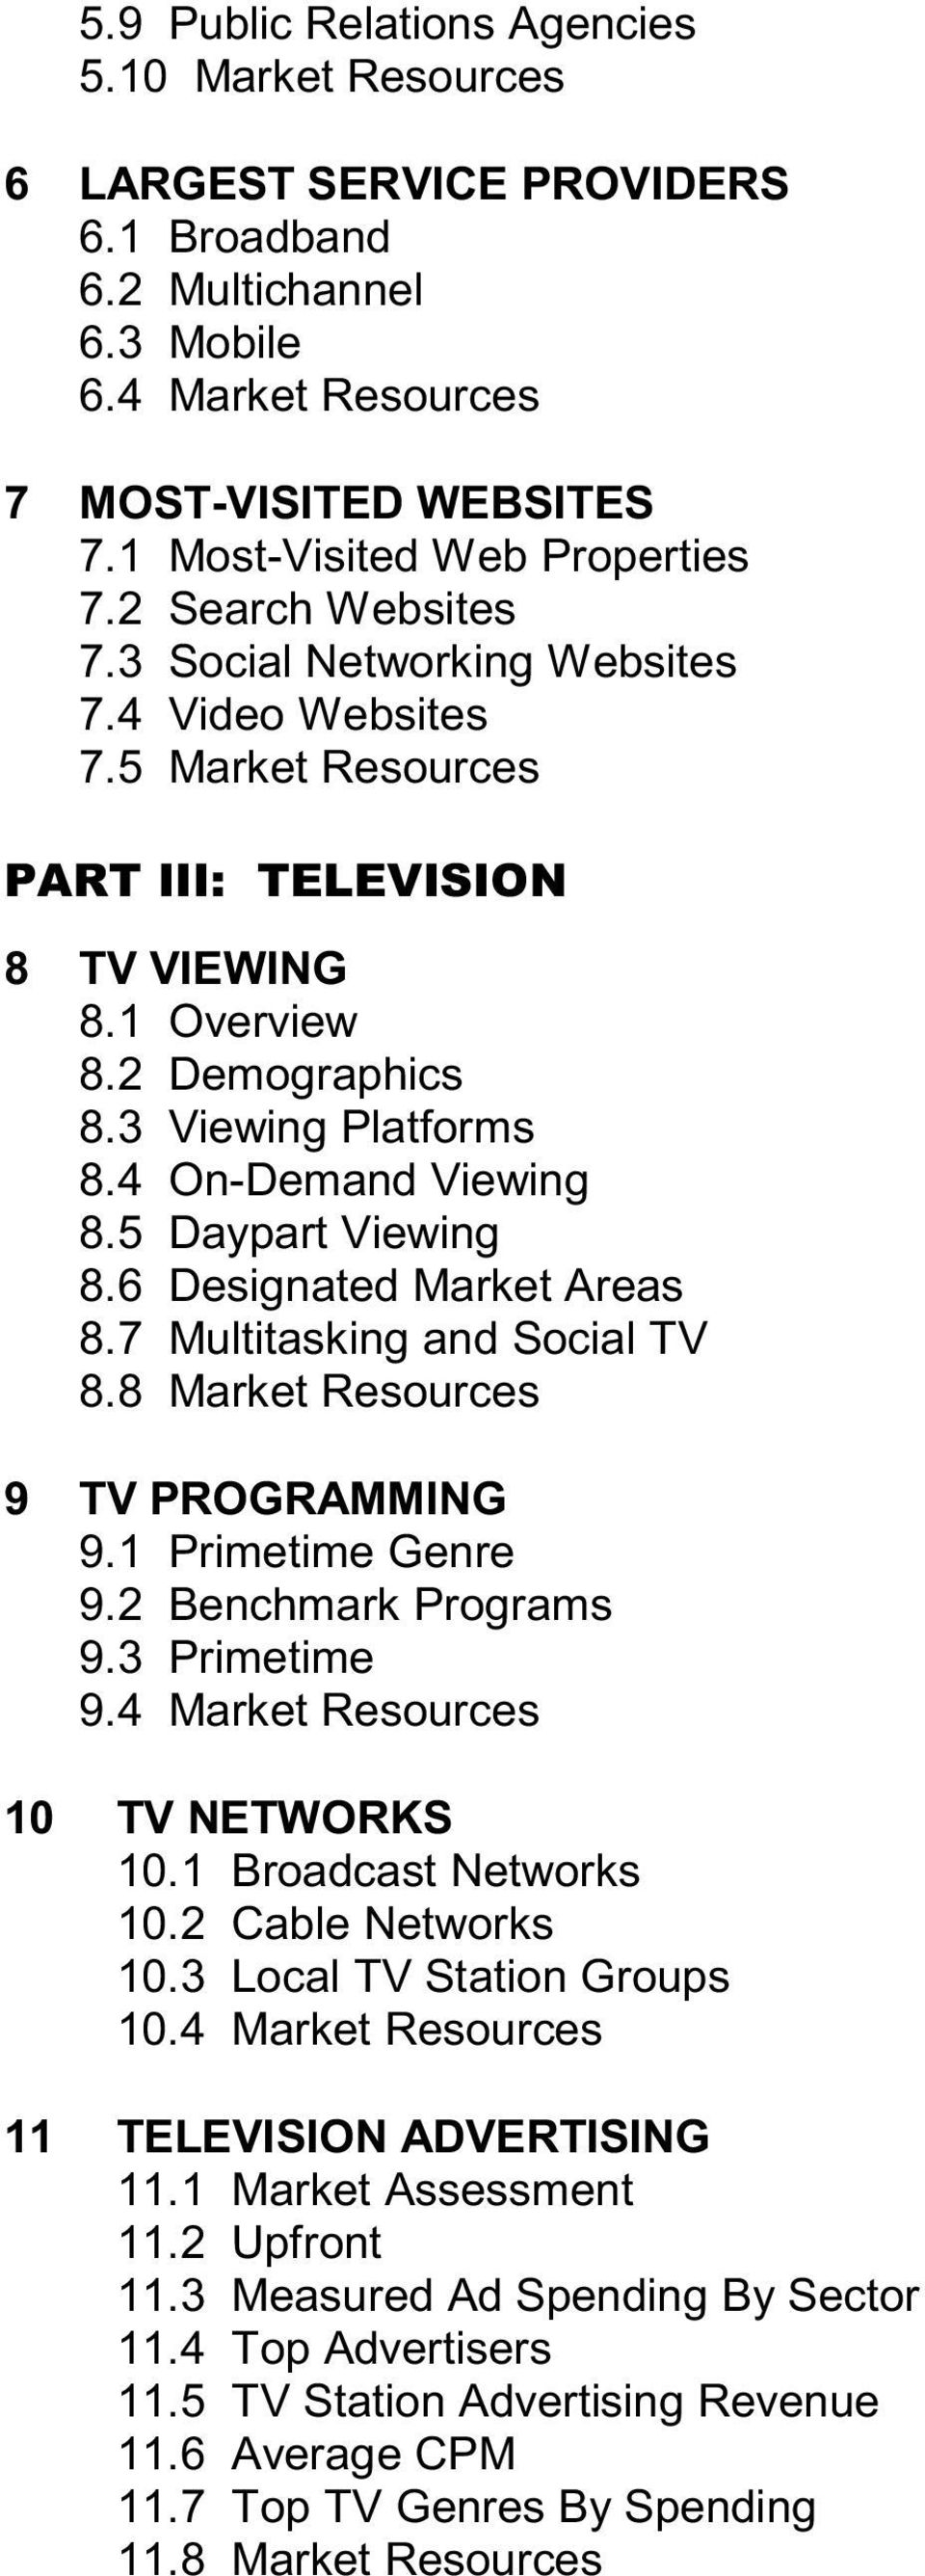 3 Viewing Platforms 8.4 On-Demand Viewing 8.5 Daypart Viewing 8.6 Designated Market Areas 8.7 Multitasking and Social TV 8.8 Market Resources 9 TV PROGRAMMING 9.1 Primetime Genre 9.